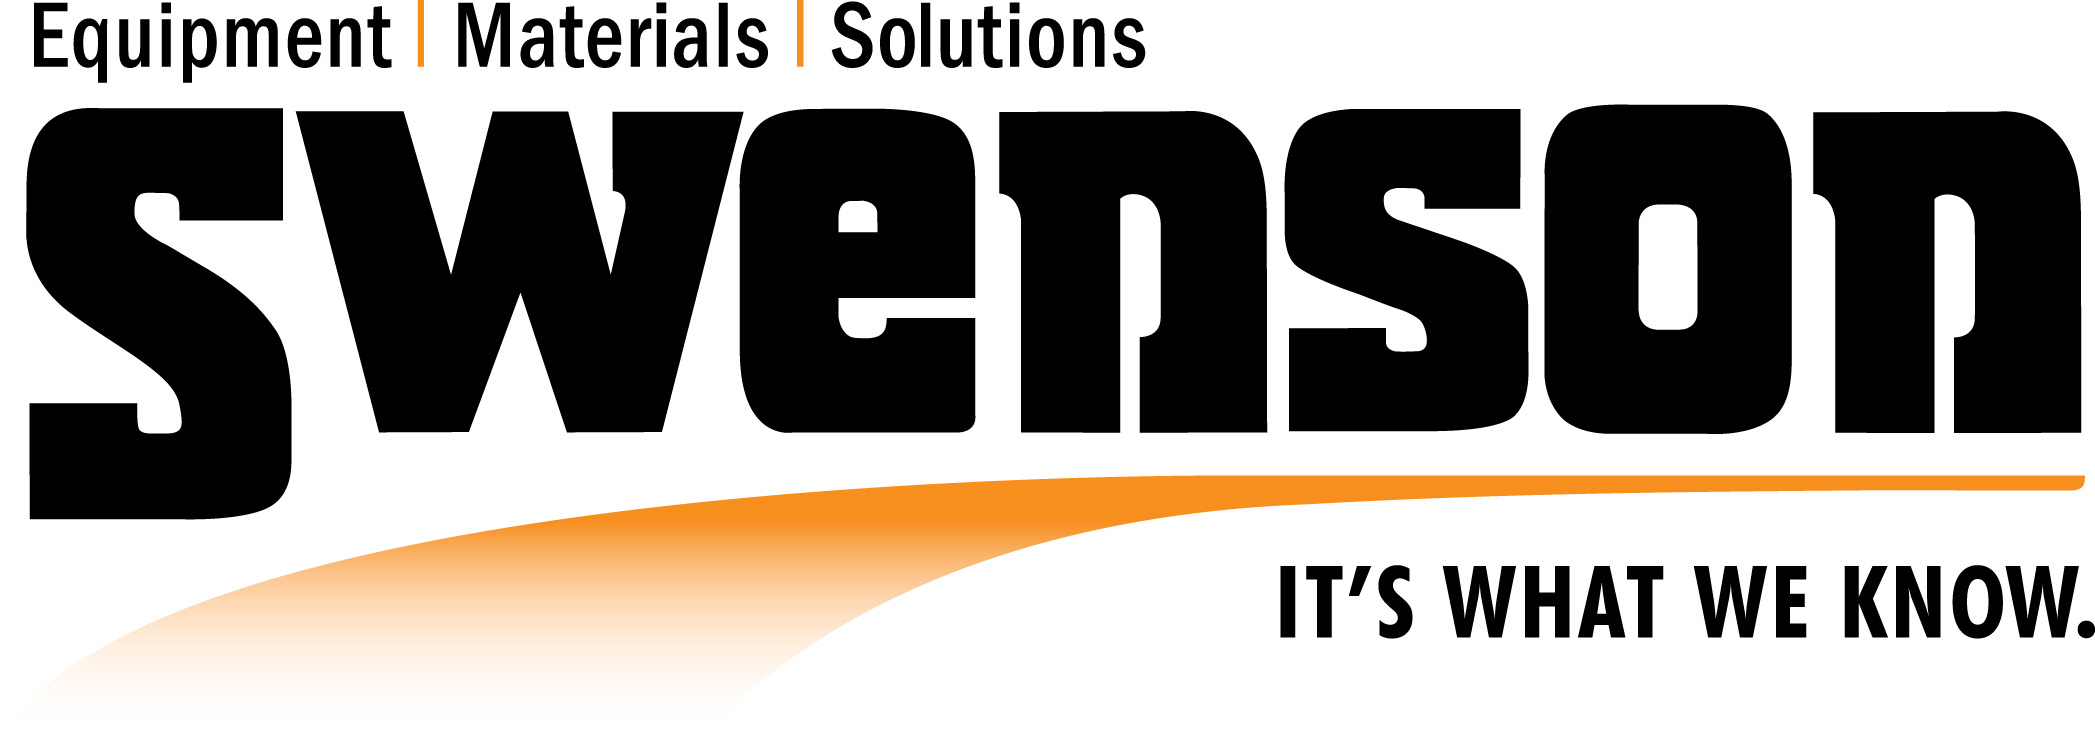 Swenson Products